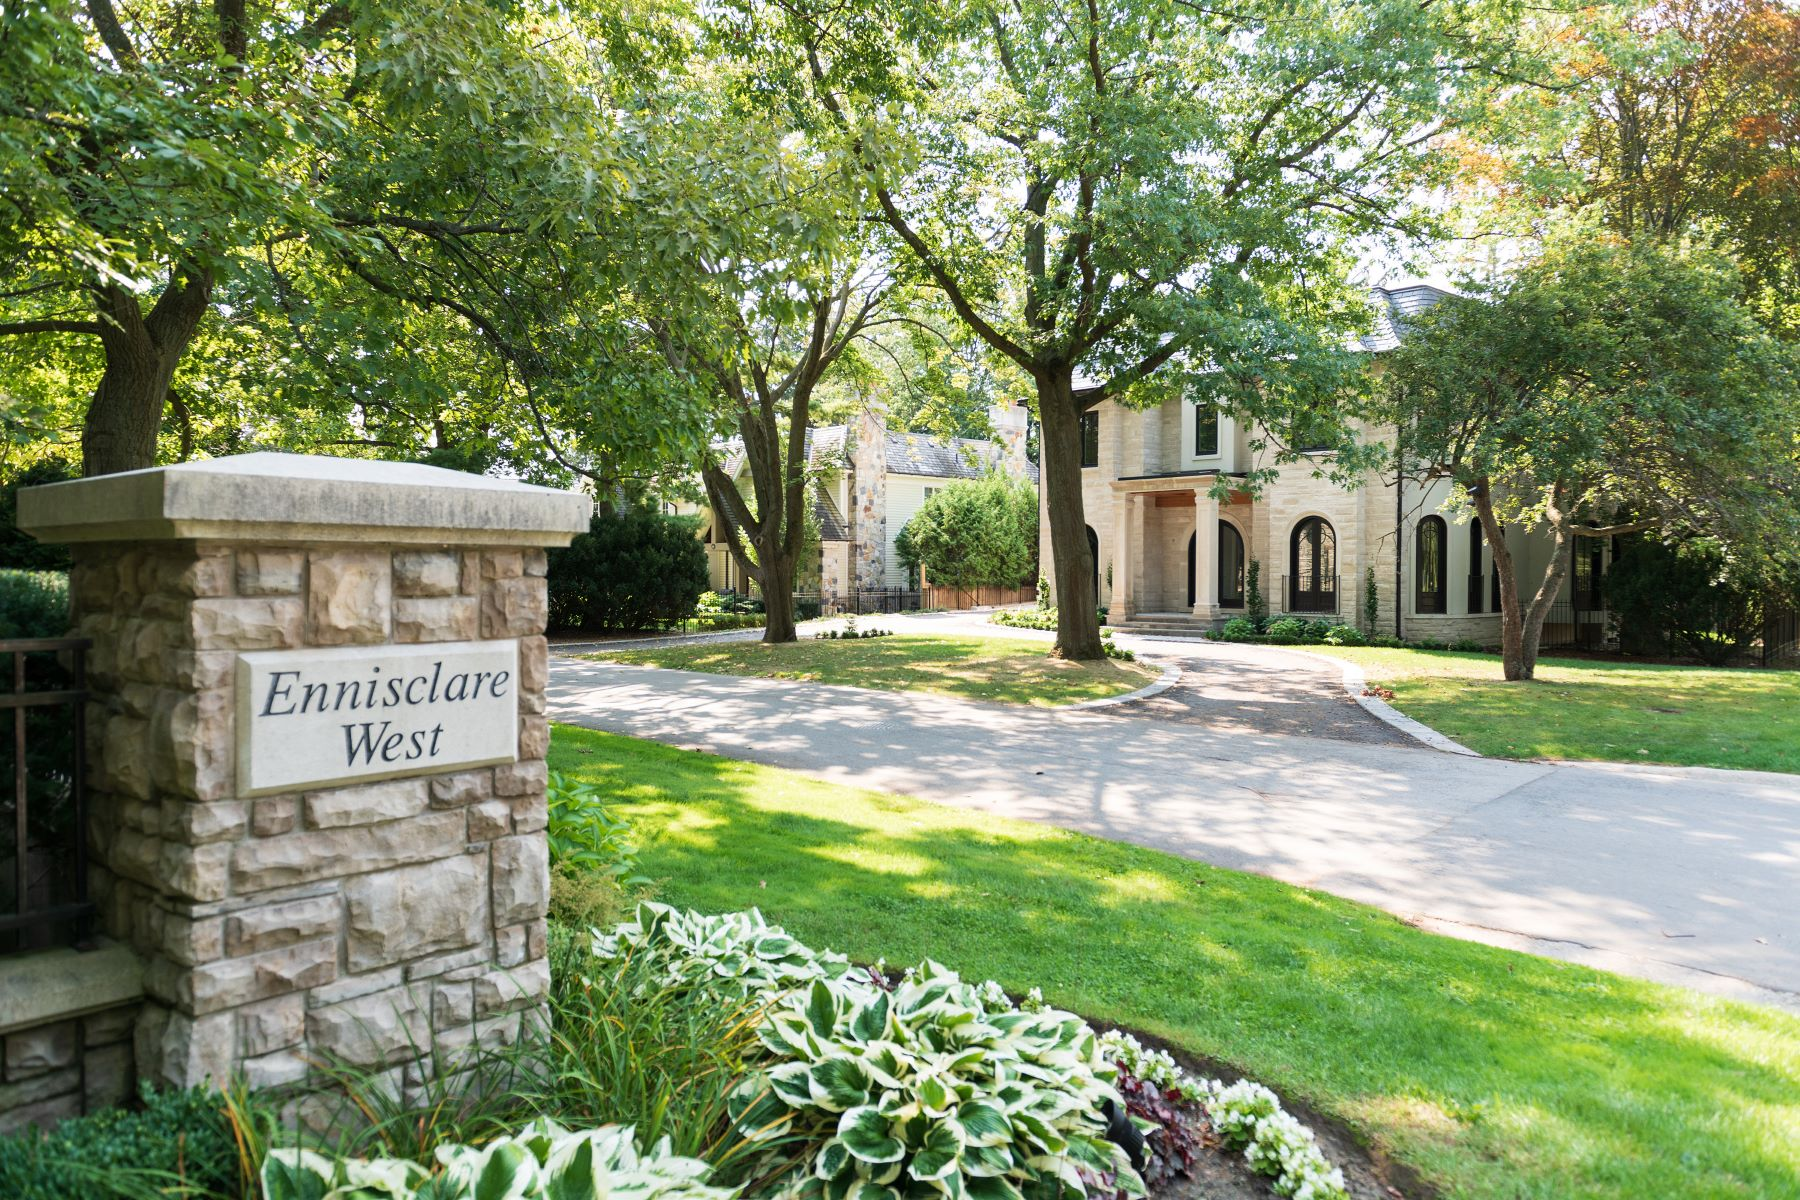 Single Family Homes for Sale at Ennisclare West Estate 98 Ennisclare Drive West Oakville, Ontario L6J 4N2 Canada